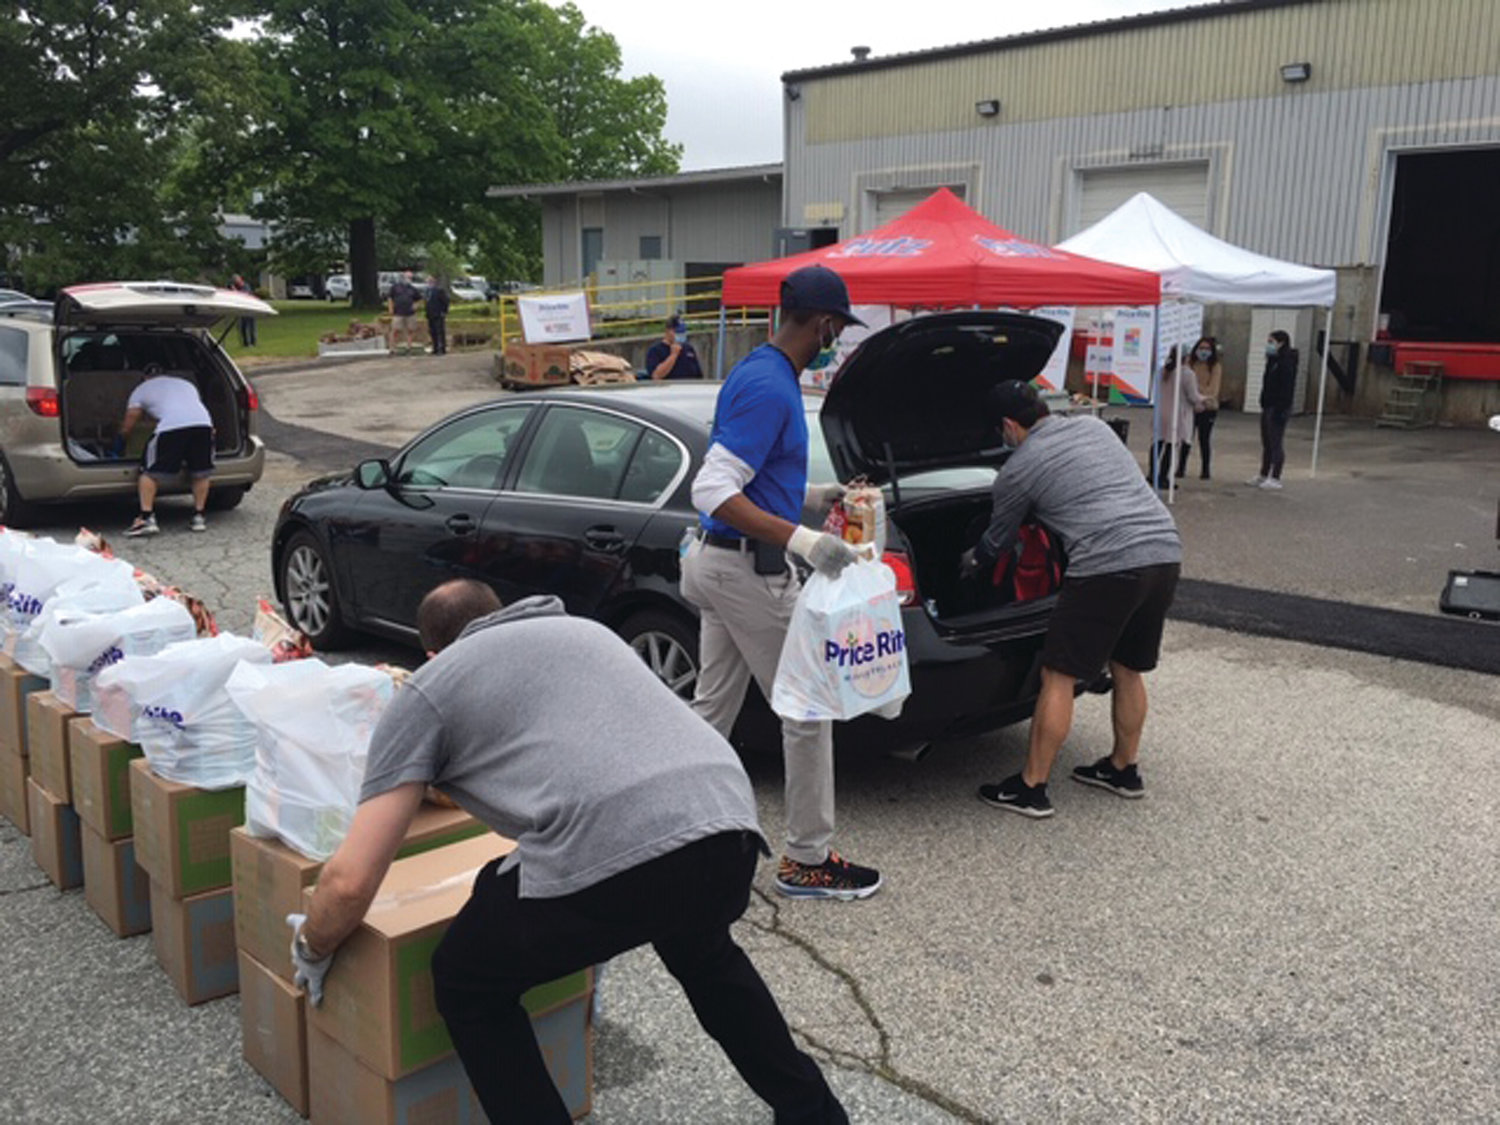 PACKING IT IN: Volunteers help load boxes and bags of food and other supplies into the vehicles of those who had obtained vouchers on line.